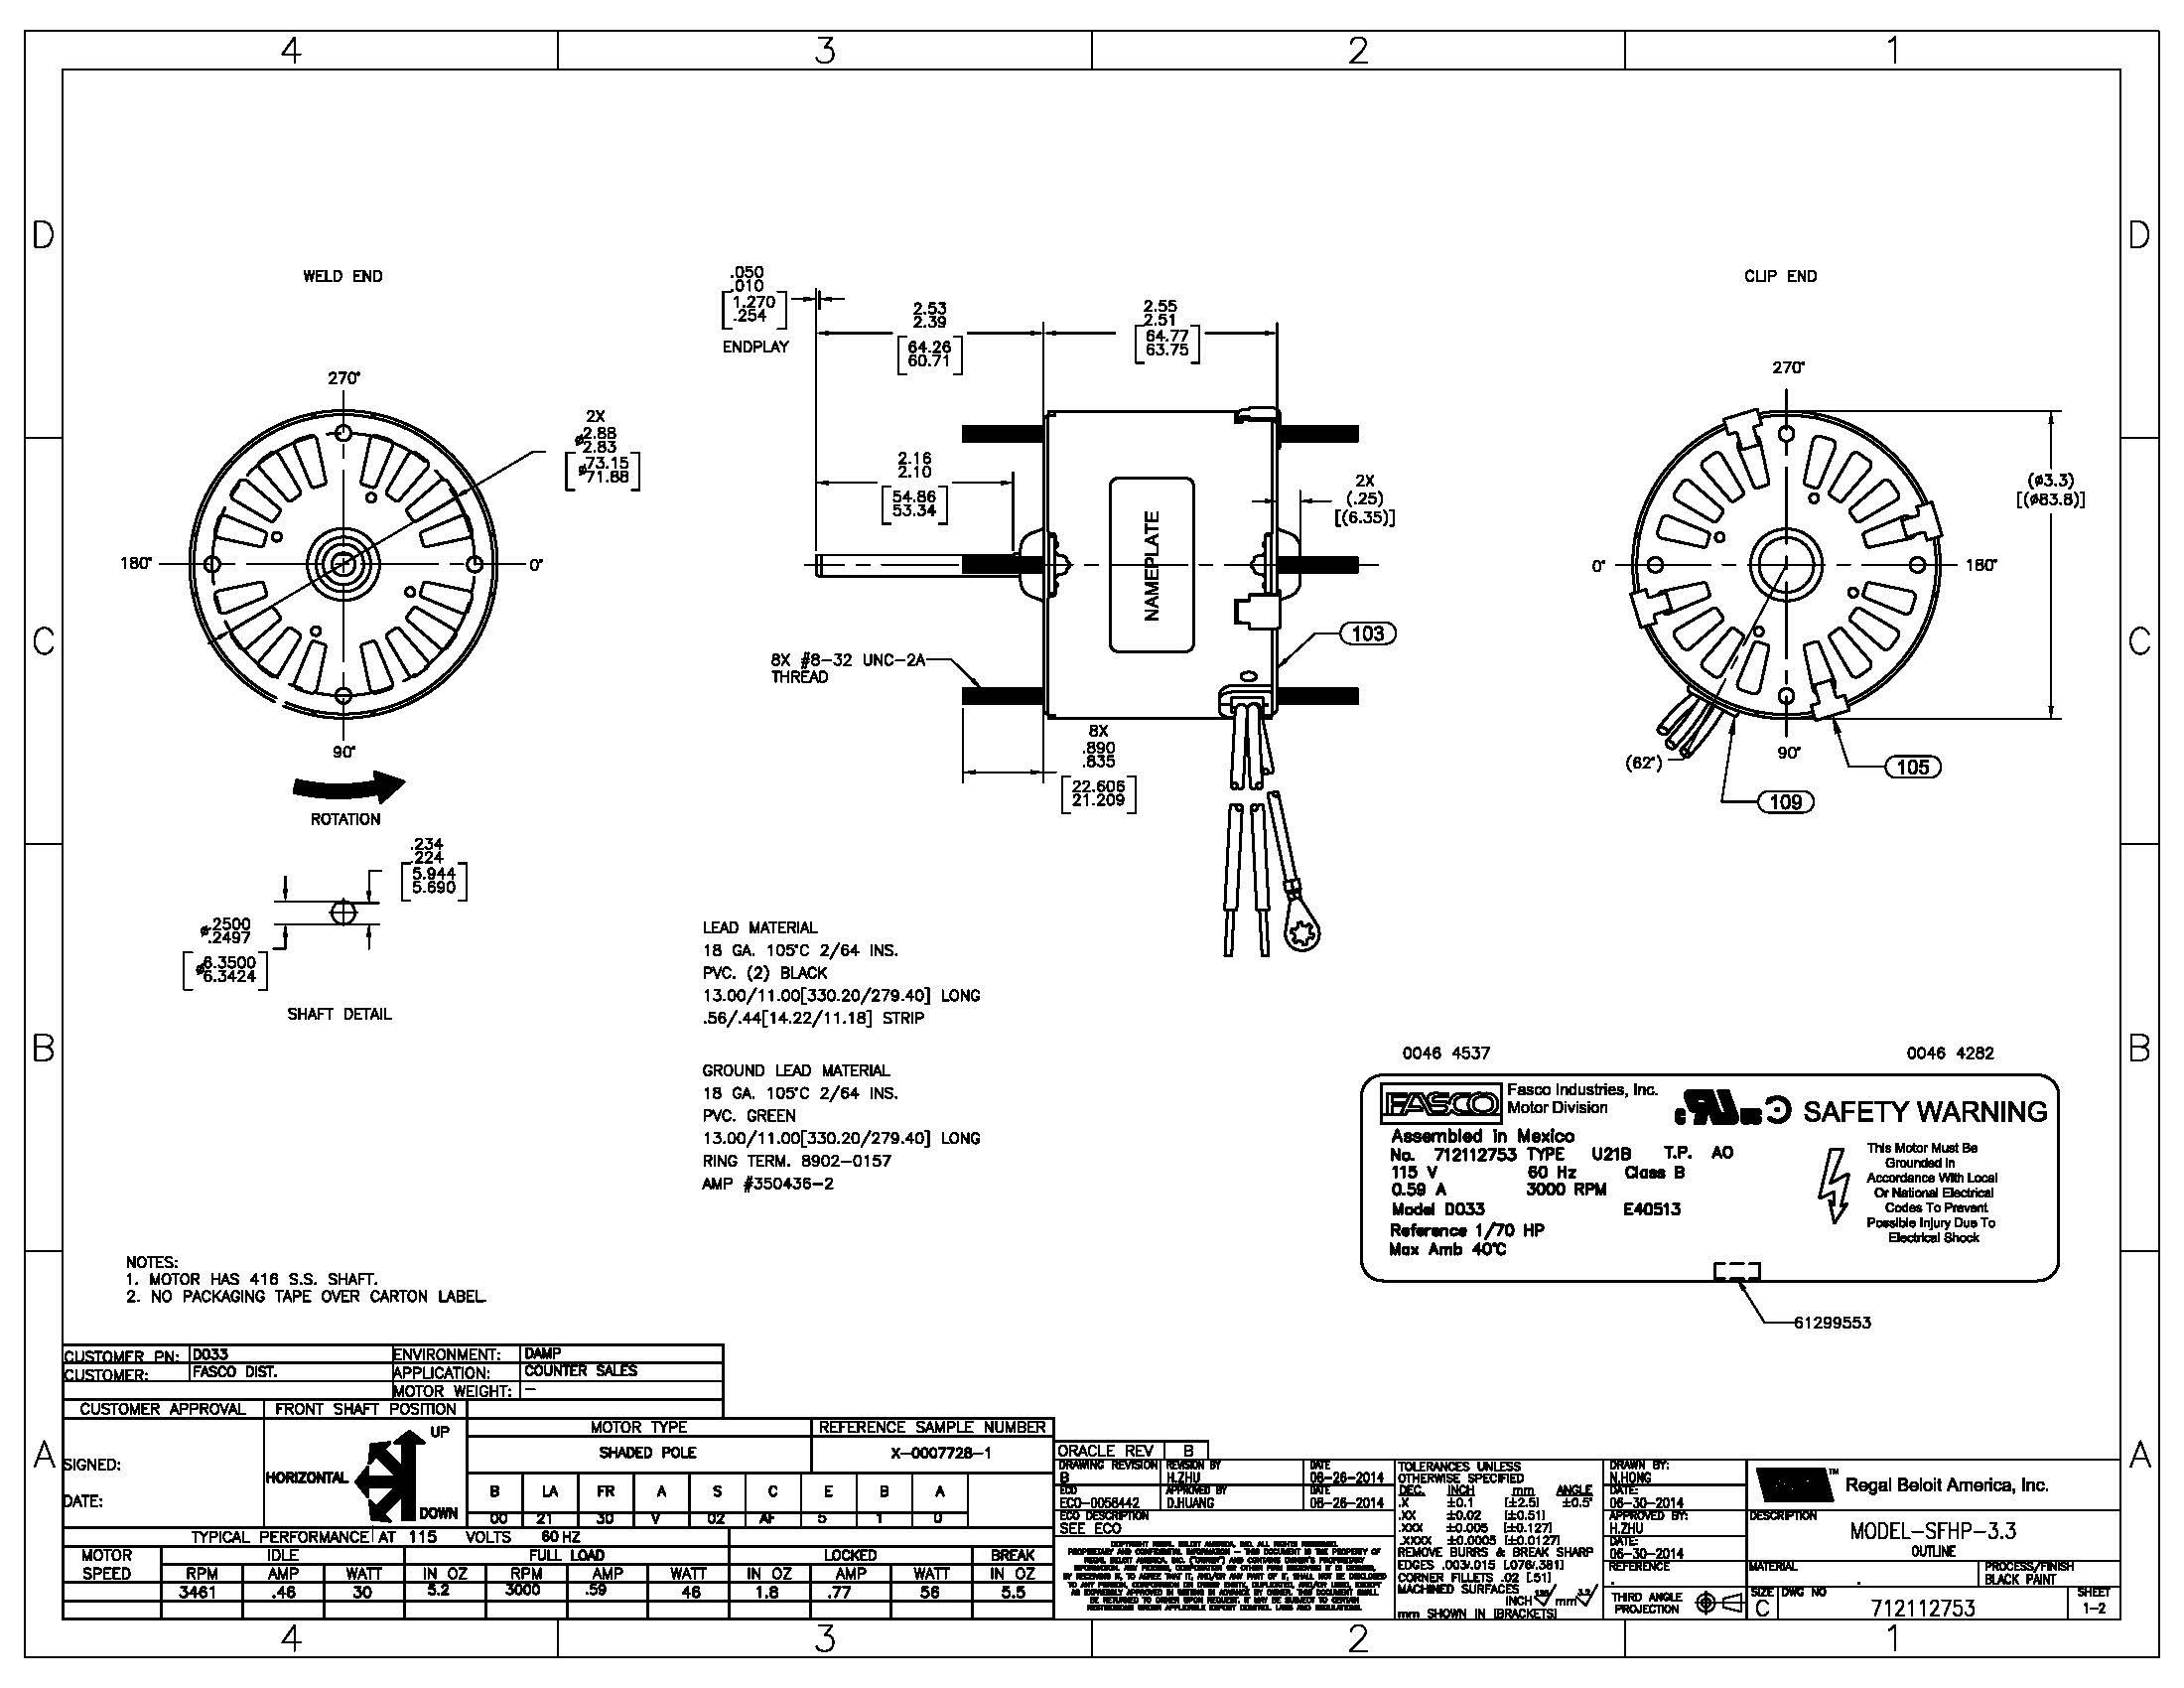 fasco fan motor wiring diagram Download-Wiring Diagram For Fasco Blower Motor Fresh Wiring Diagram Shaded Pole Motor New D033 Fasco 1 70 Hp Fan & Blower 7-q